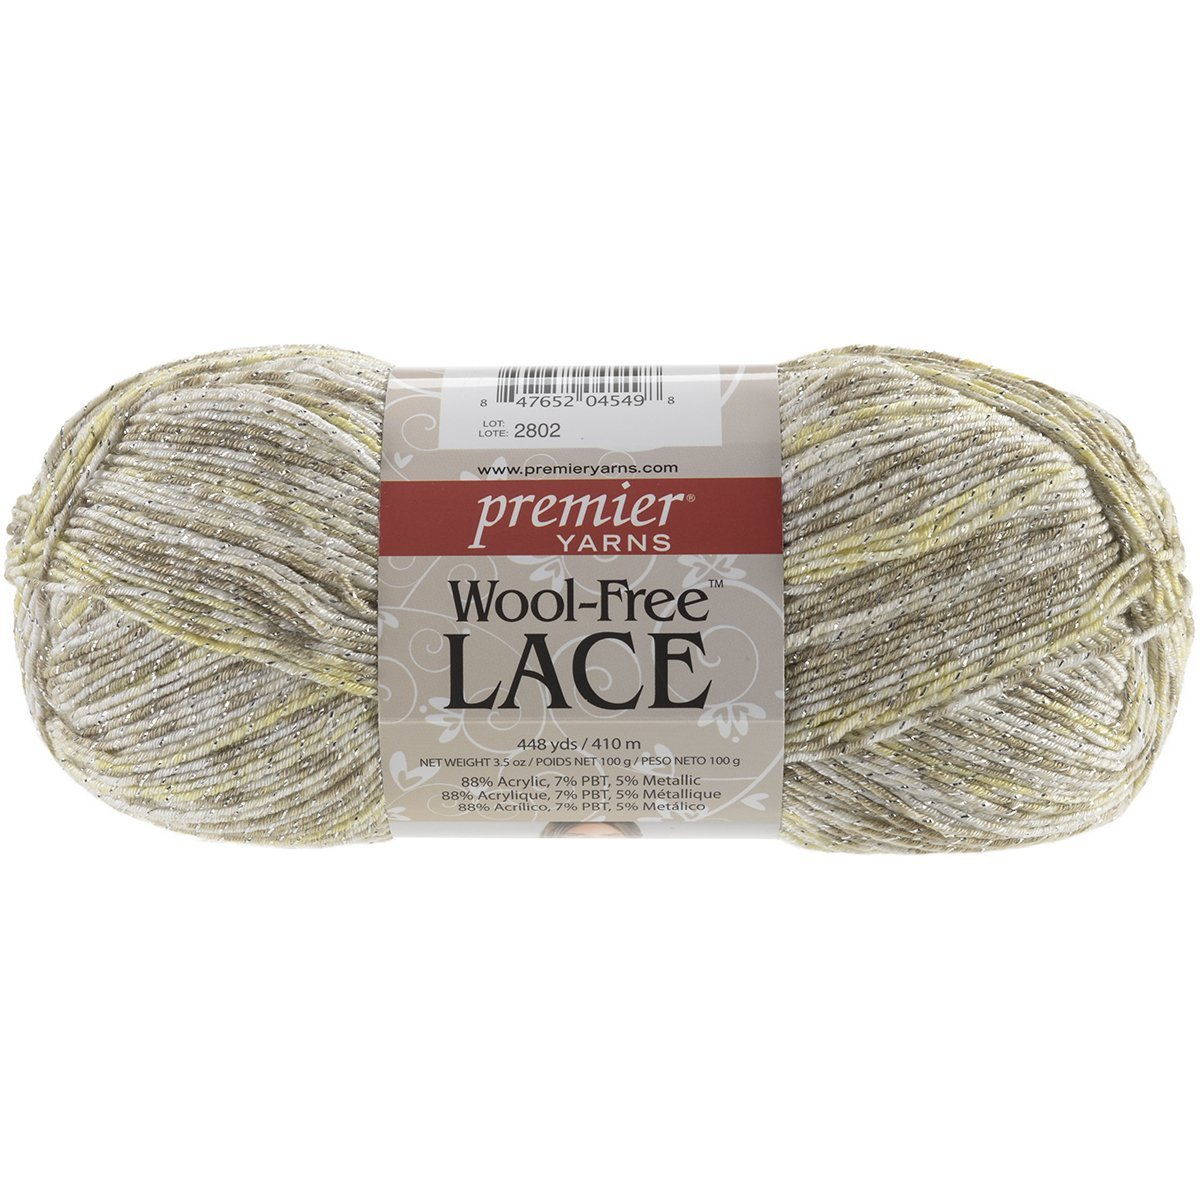 Free Lace Wool Yarn, White Gold, 88% Acrylic, 7% Pbt, 5% Metallic By Premier Yarns Ship from US